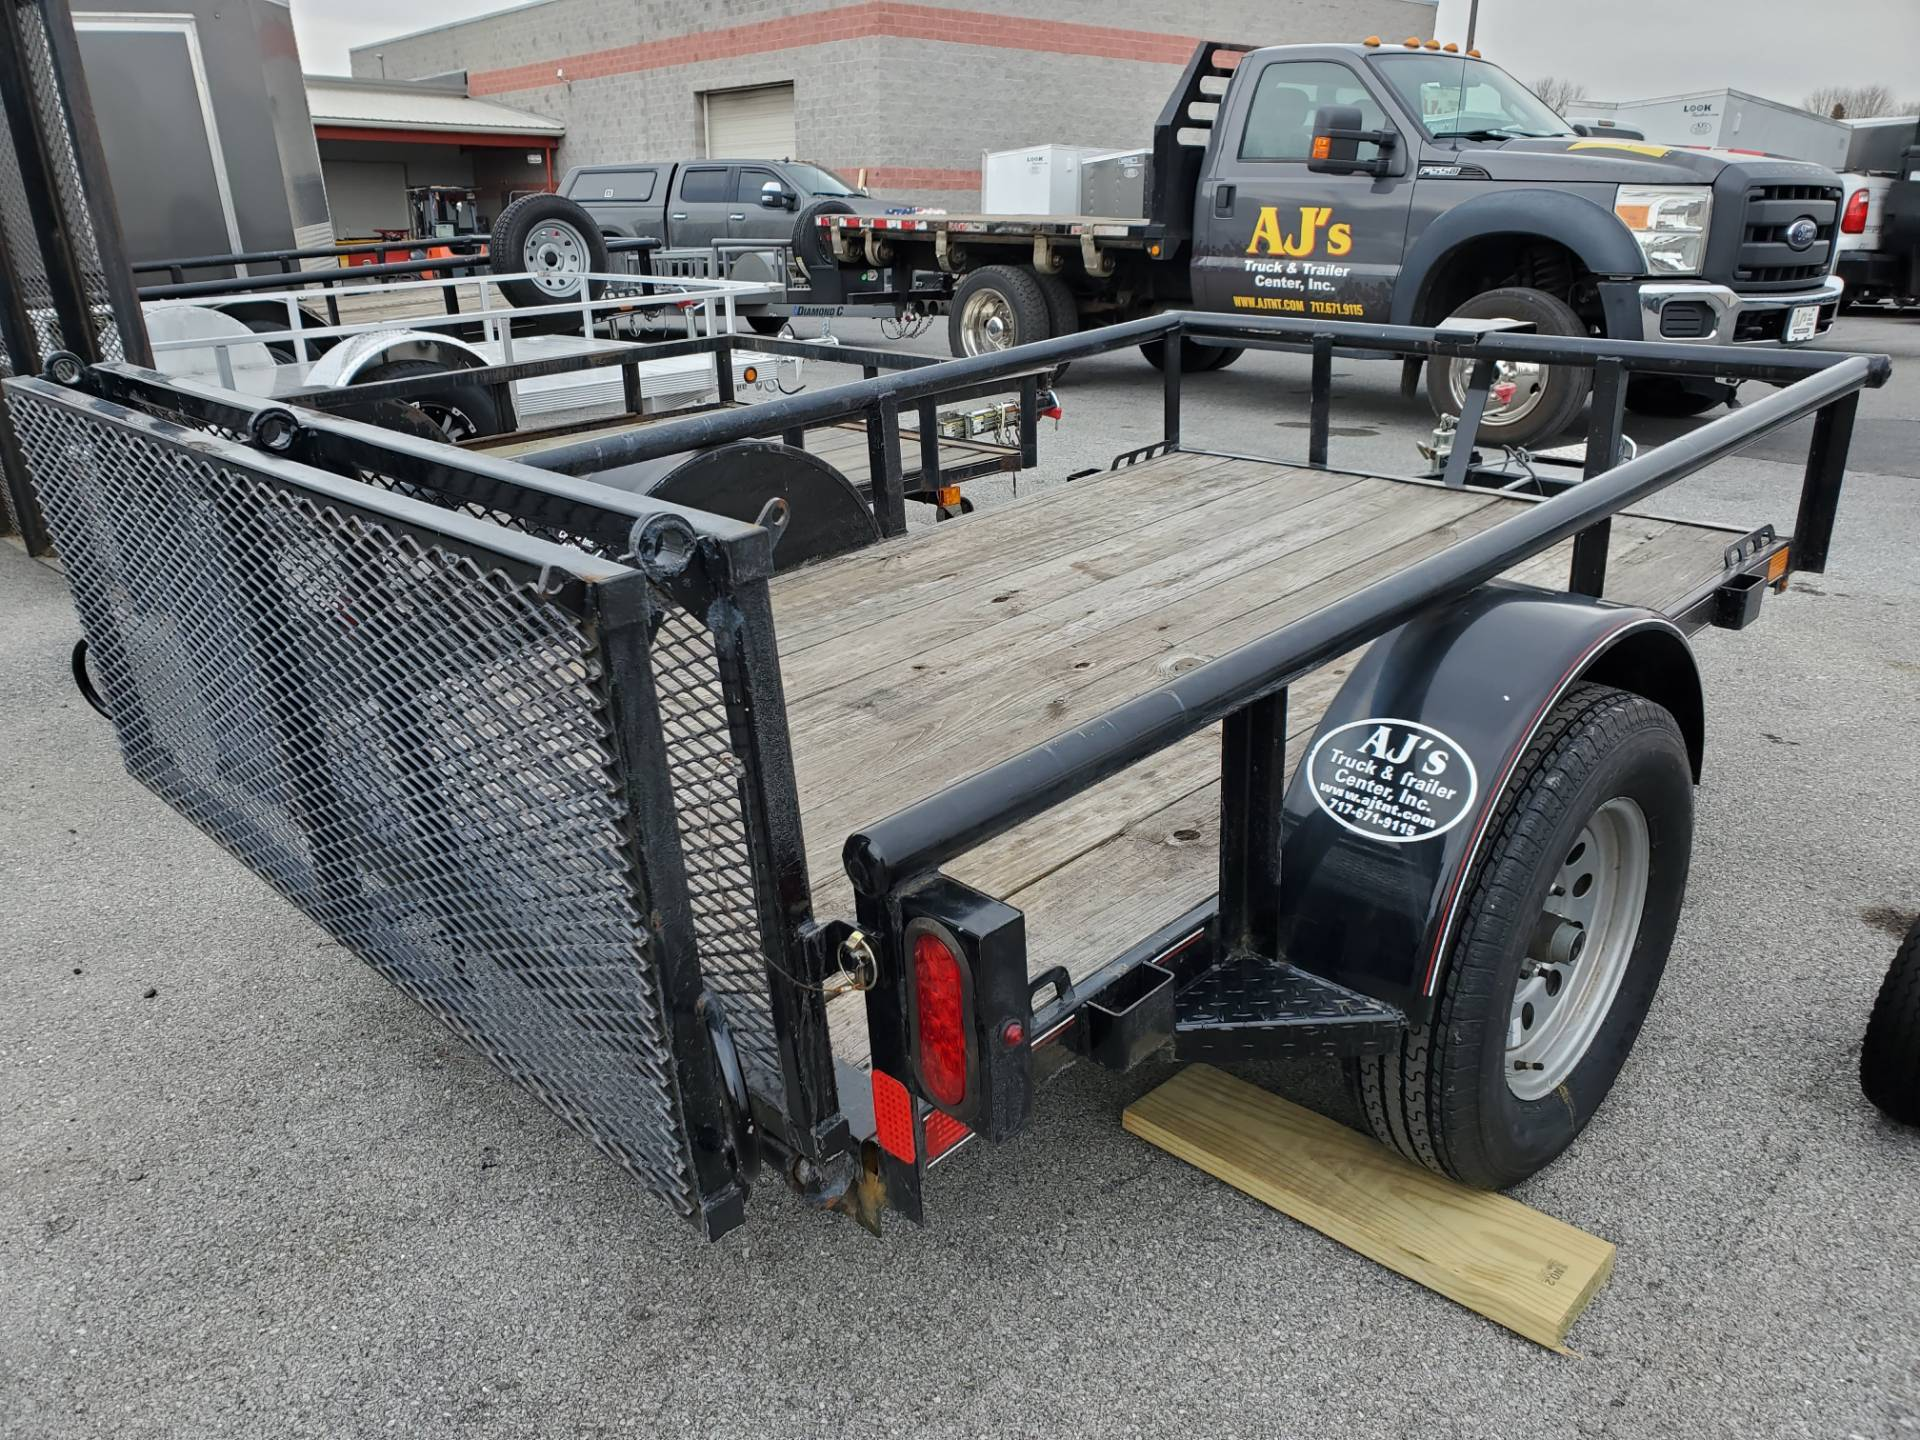 2014 USED UNITS Diamond C 5X8 PSA Utility Trailer in Harrisburg, Pennsylvania - Photo 6